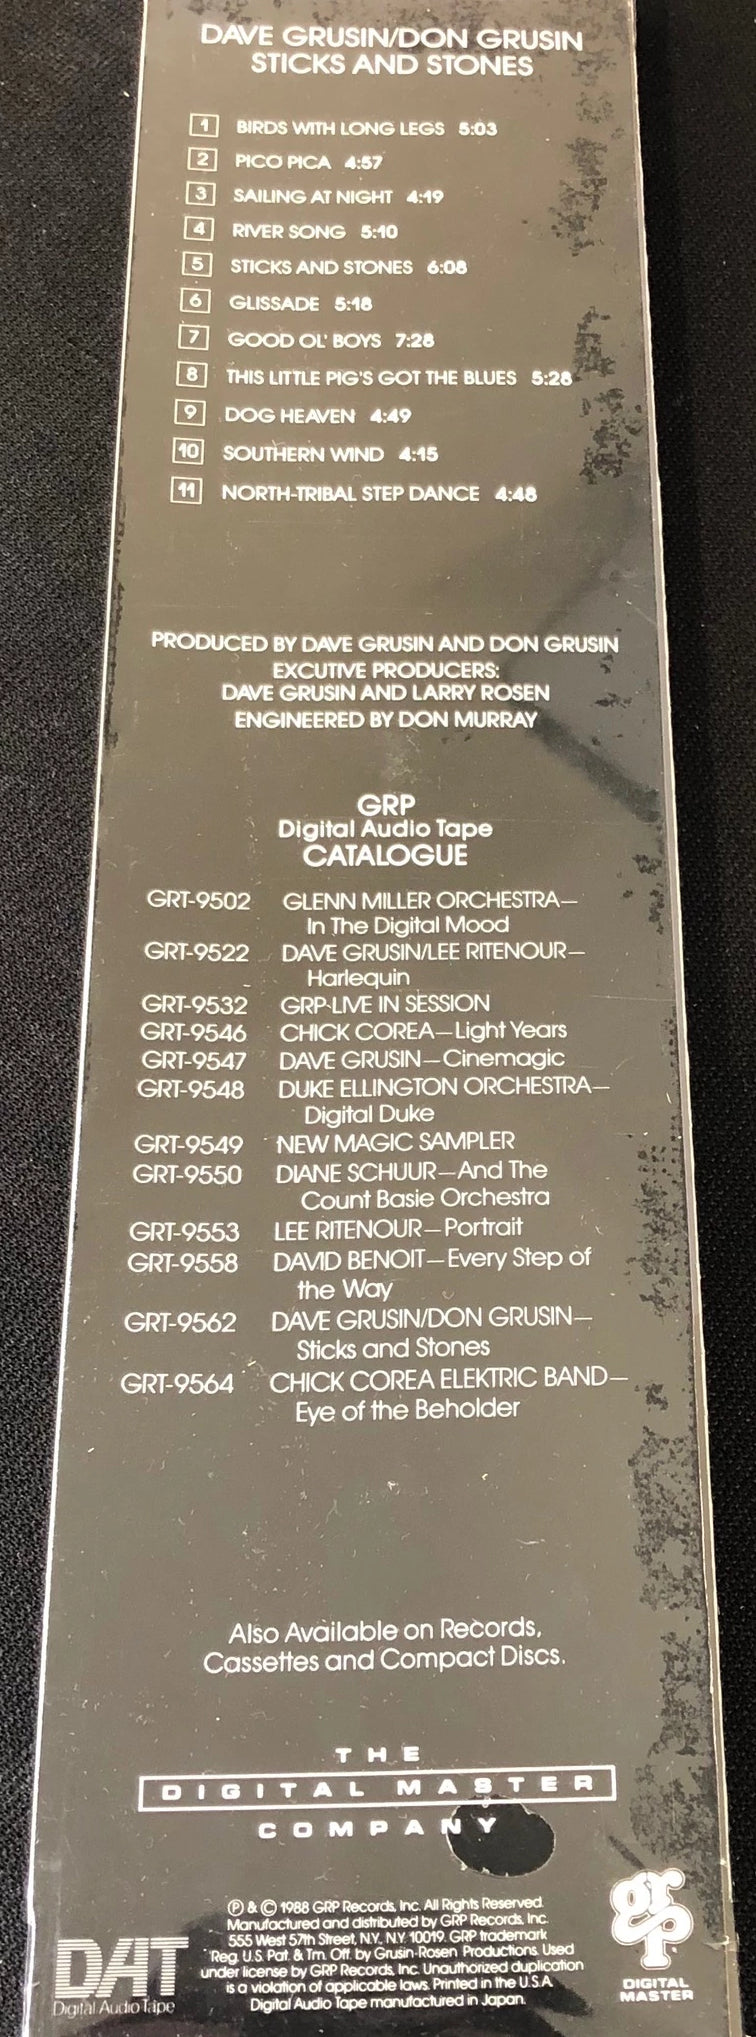 Dave Grusin / Don Grusin - Sticks and Stones - New Pre-Recorded DAT Tape